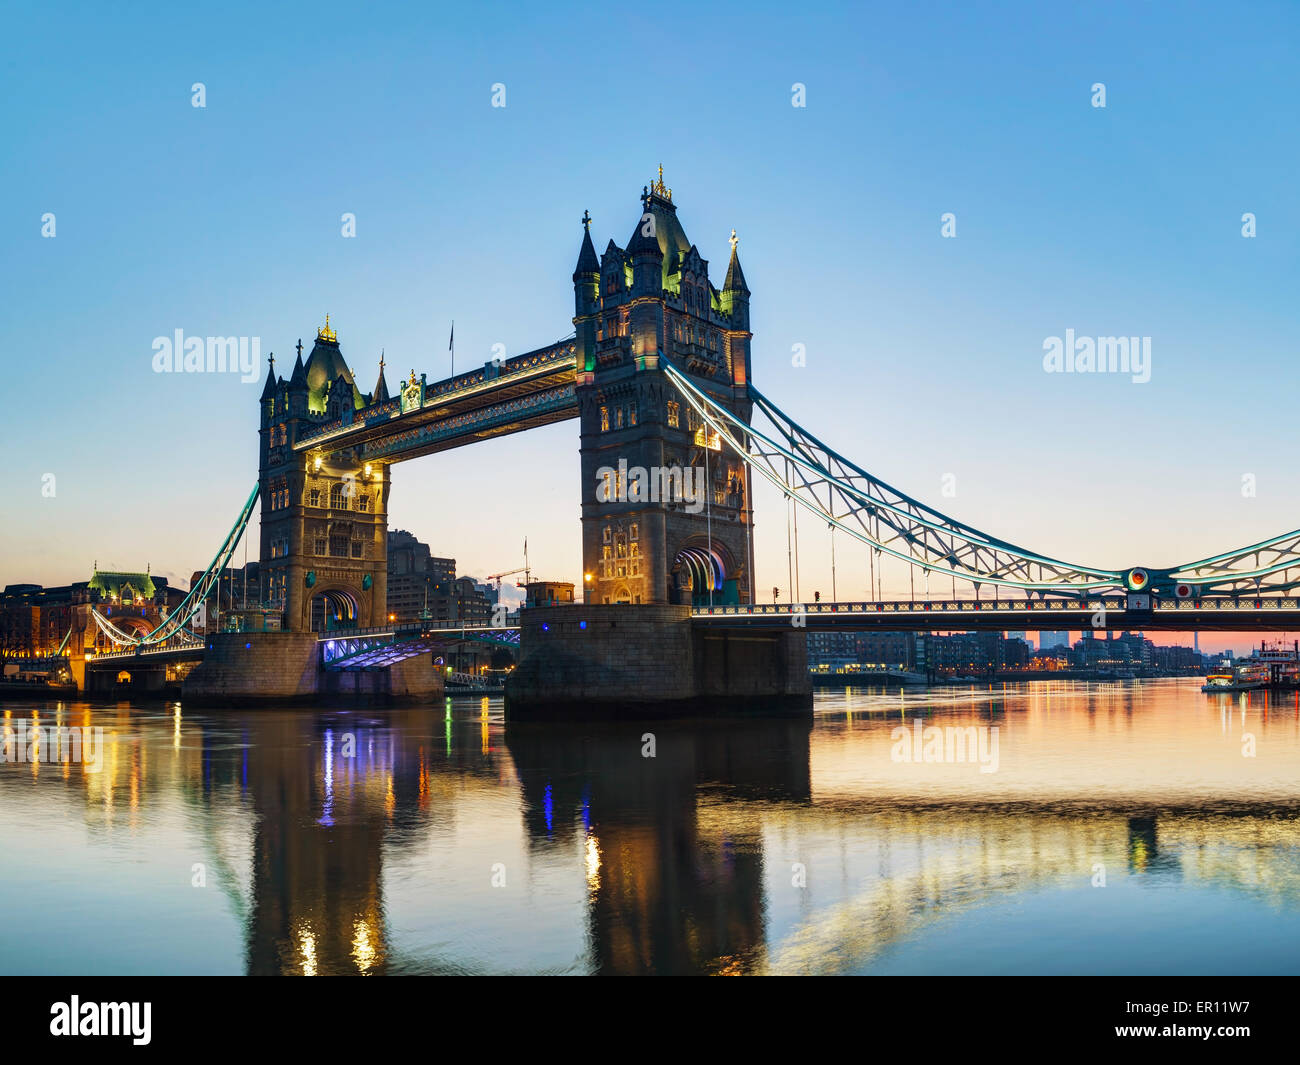 Tower bridge in London, Great Britain in the morning - Stock Image